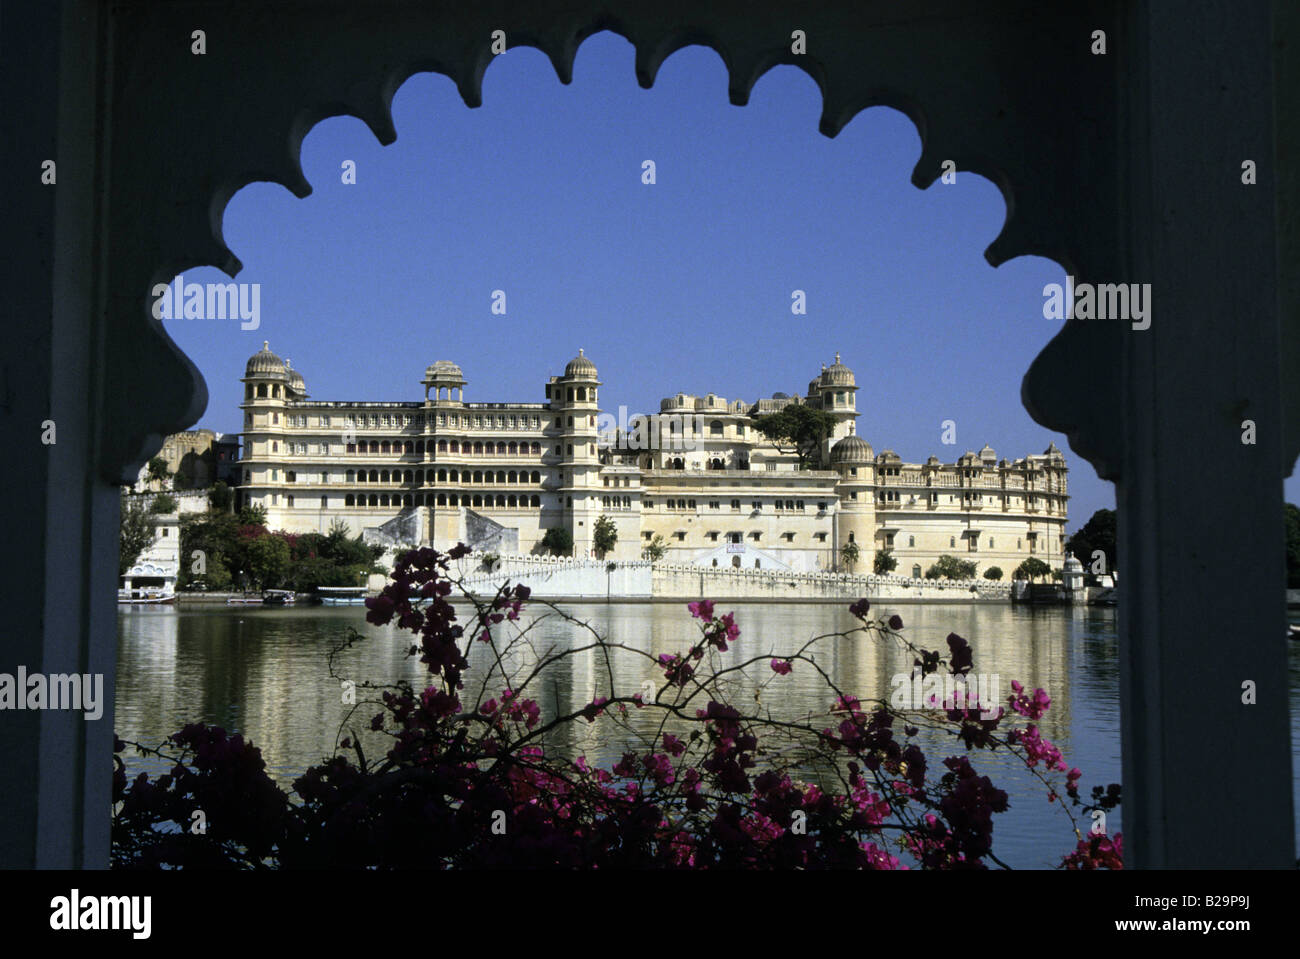 Rajasthan North India Ref WP SWIN 000644 016 Date 07 08 2007 COMPULSORY CREDIT World Pictures Photoshot - Stock Image